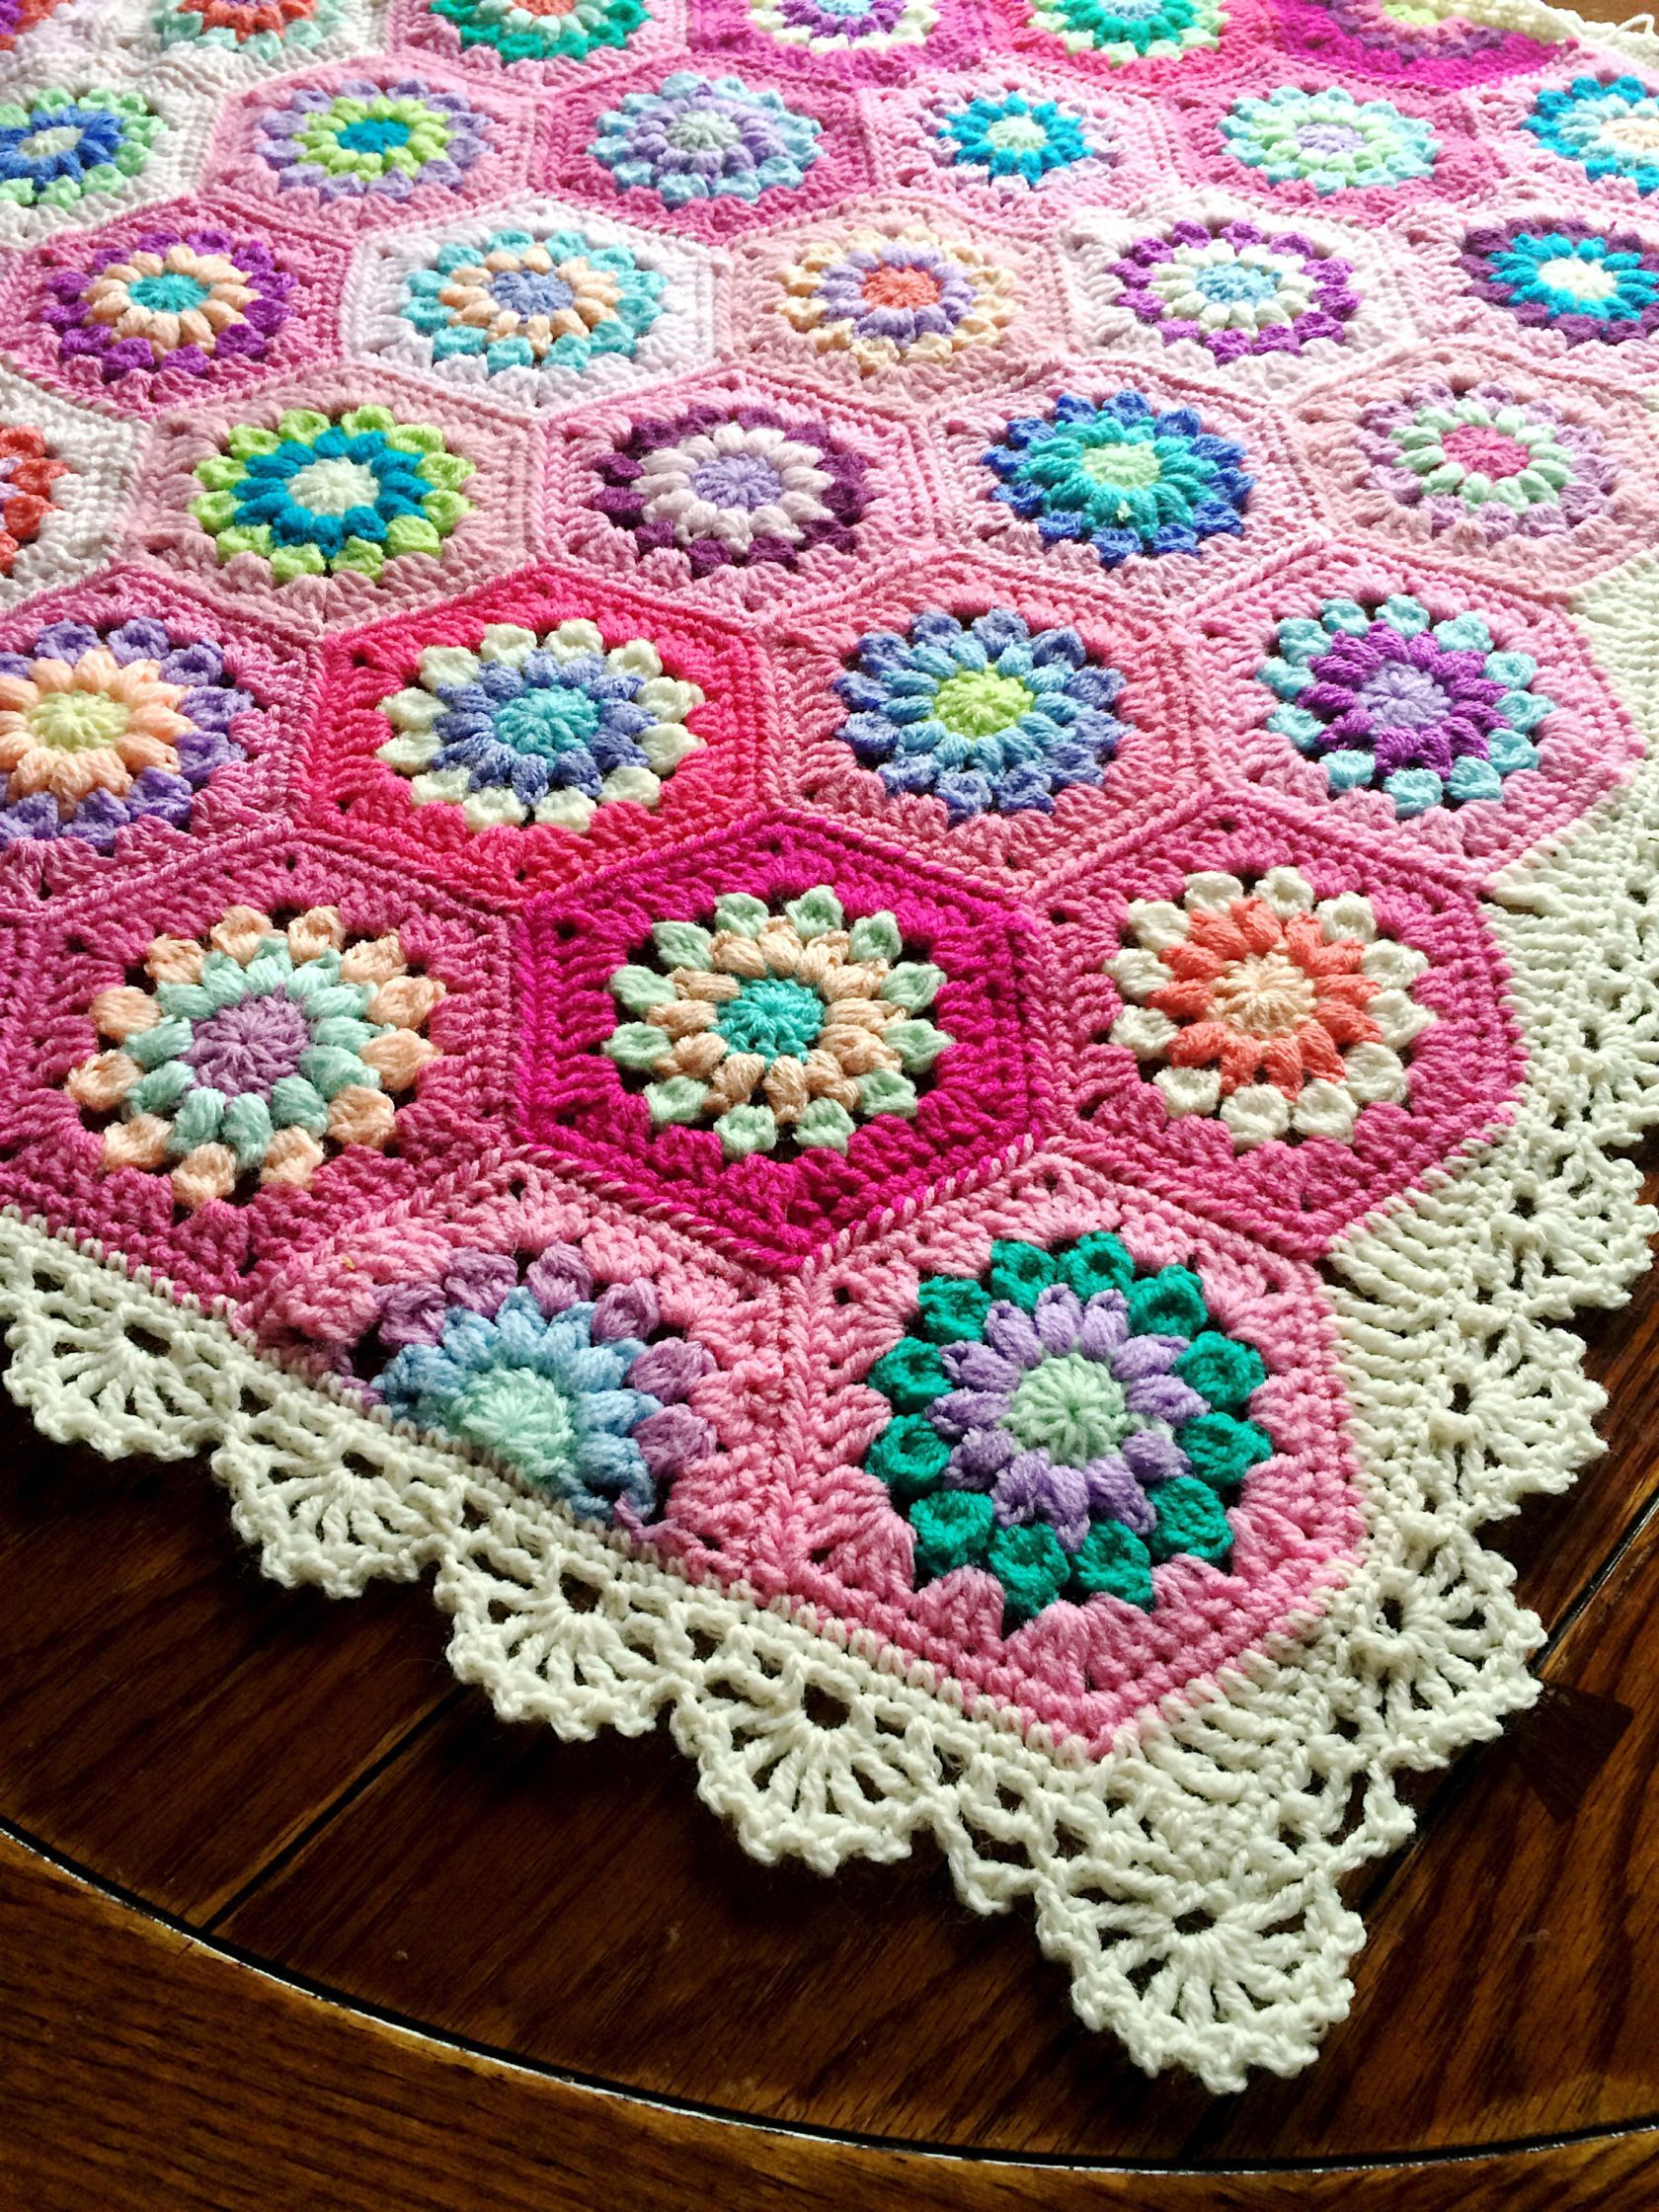 Dainty lace floral hexagonal afghan | Needlework~knit hats ...